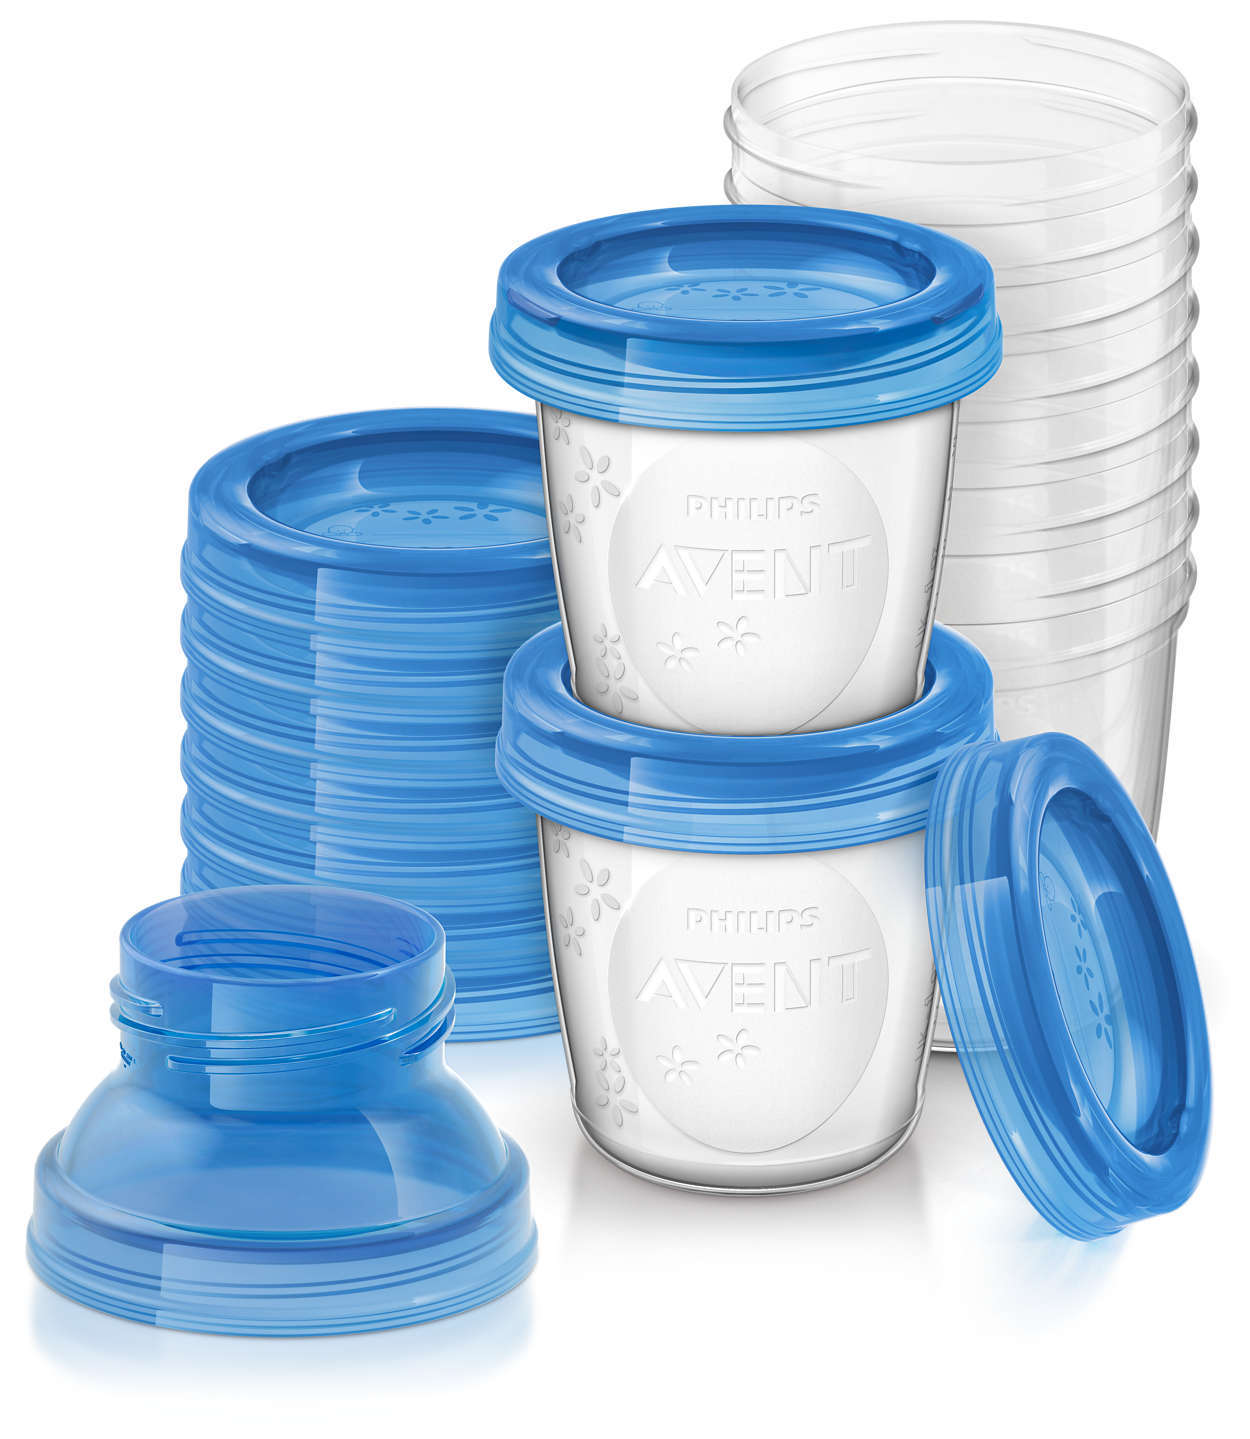 Philips Avent Milk Storage Cups - 180ml (10 Pack) image